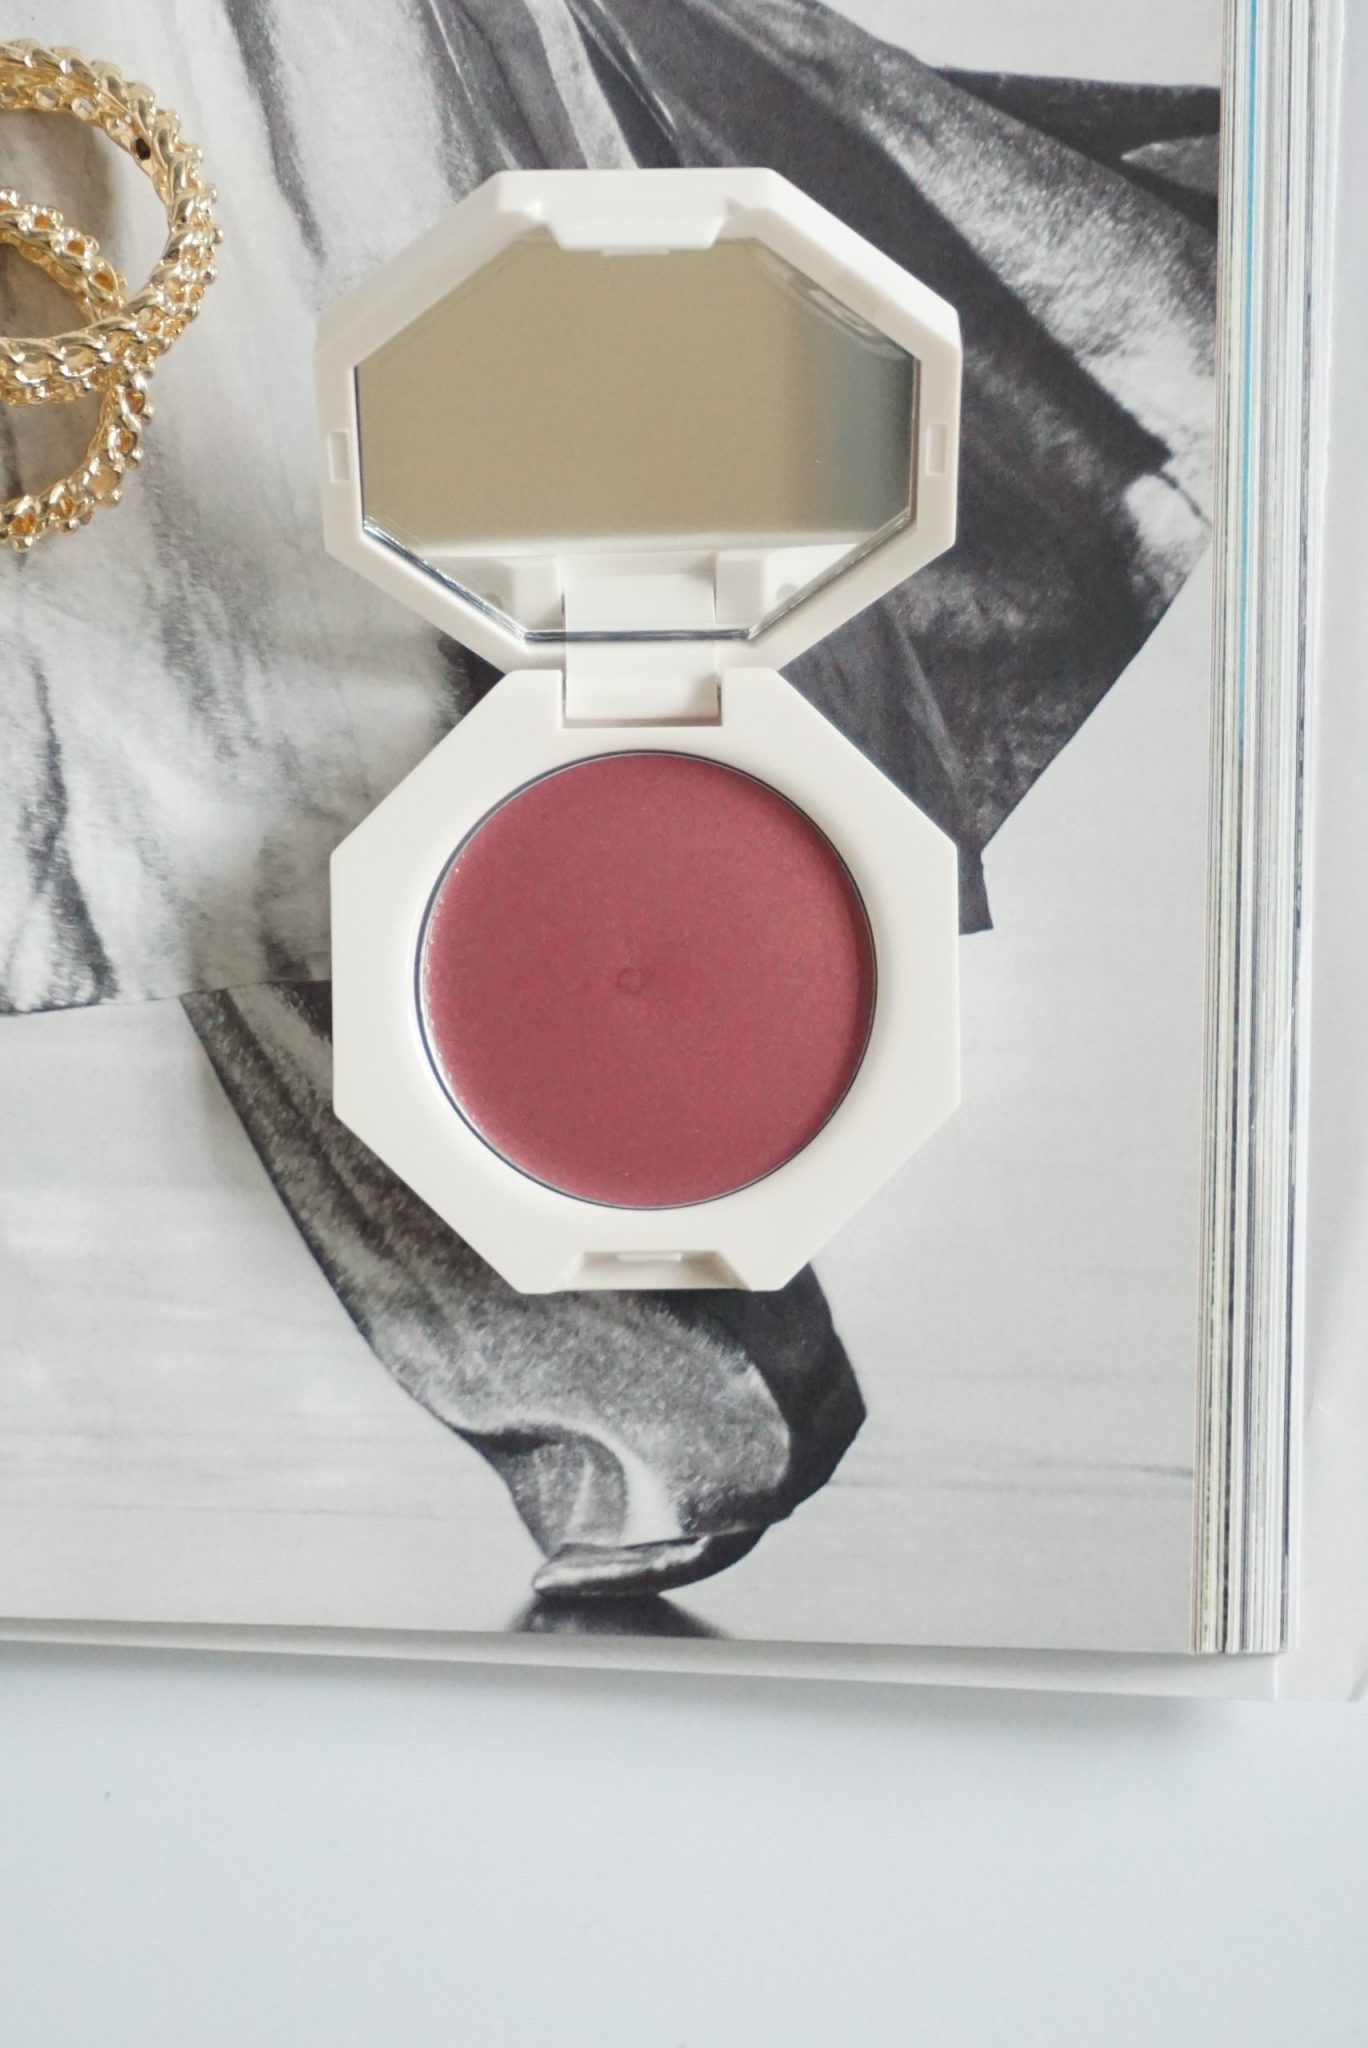 FENTY BEAUTY CHEEKS OUT FREESTYLE CREAM BLUSHES IN COOL BERRY